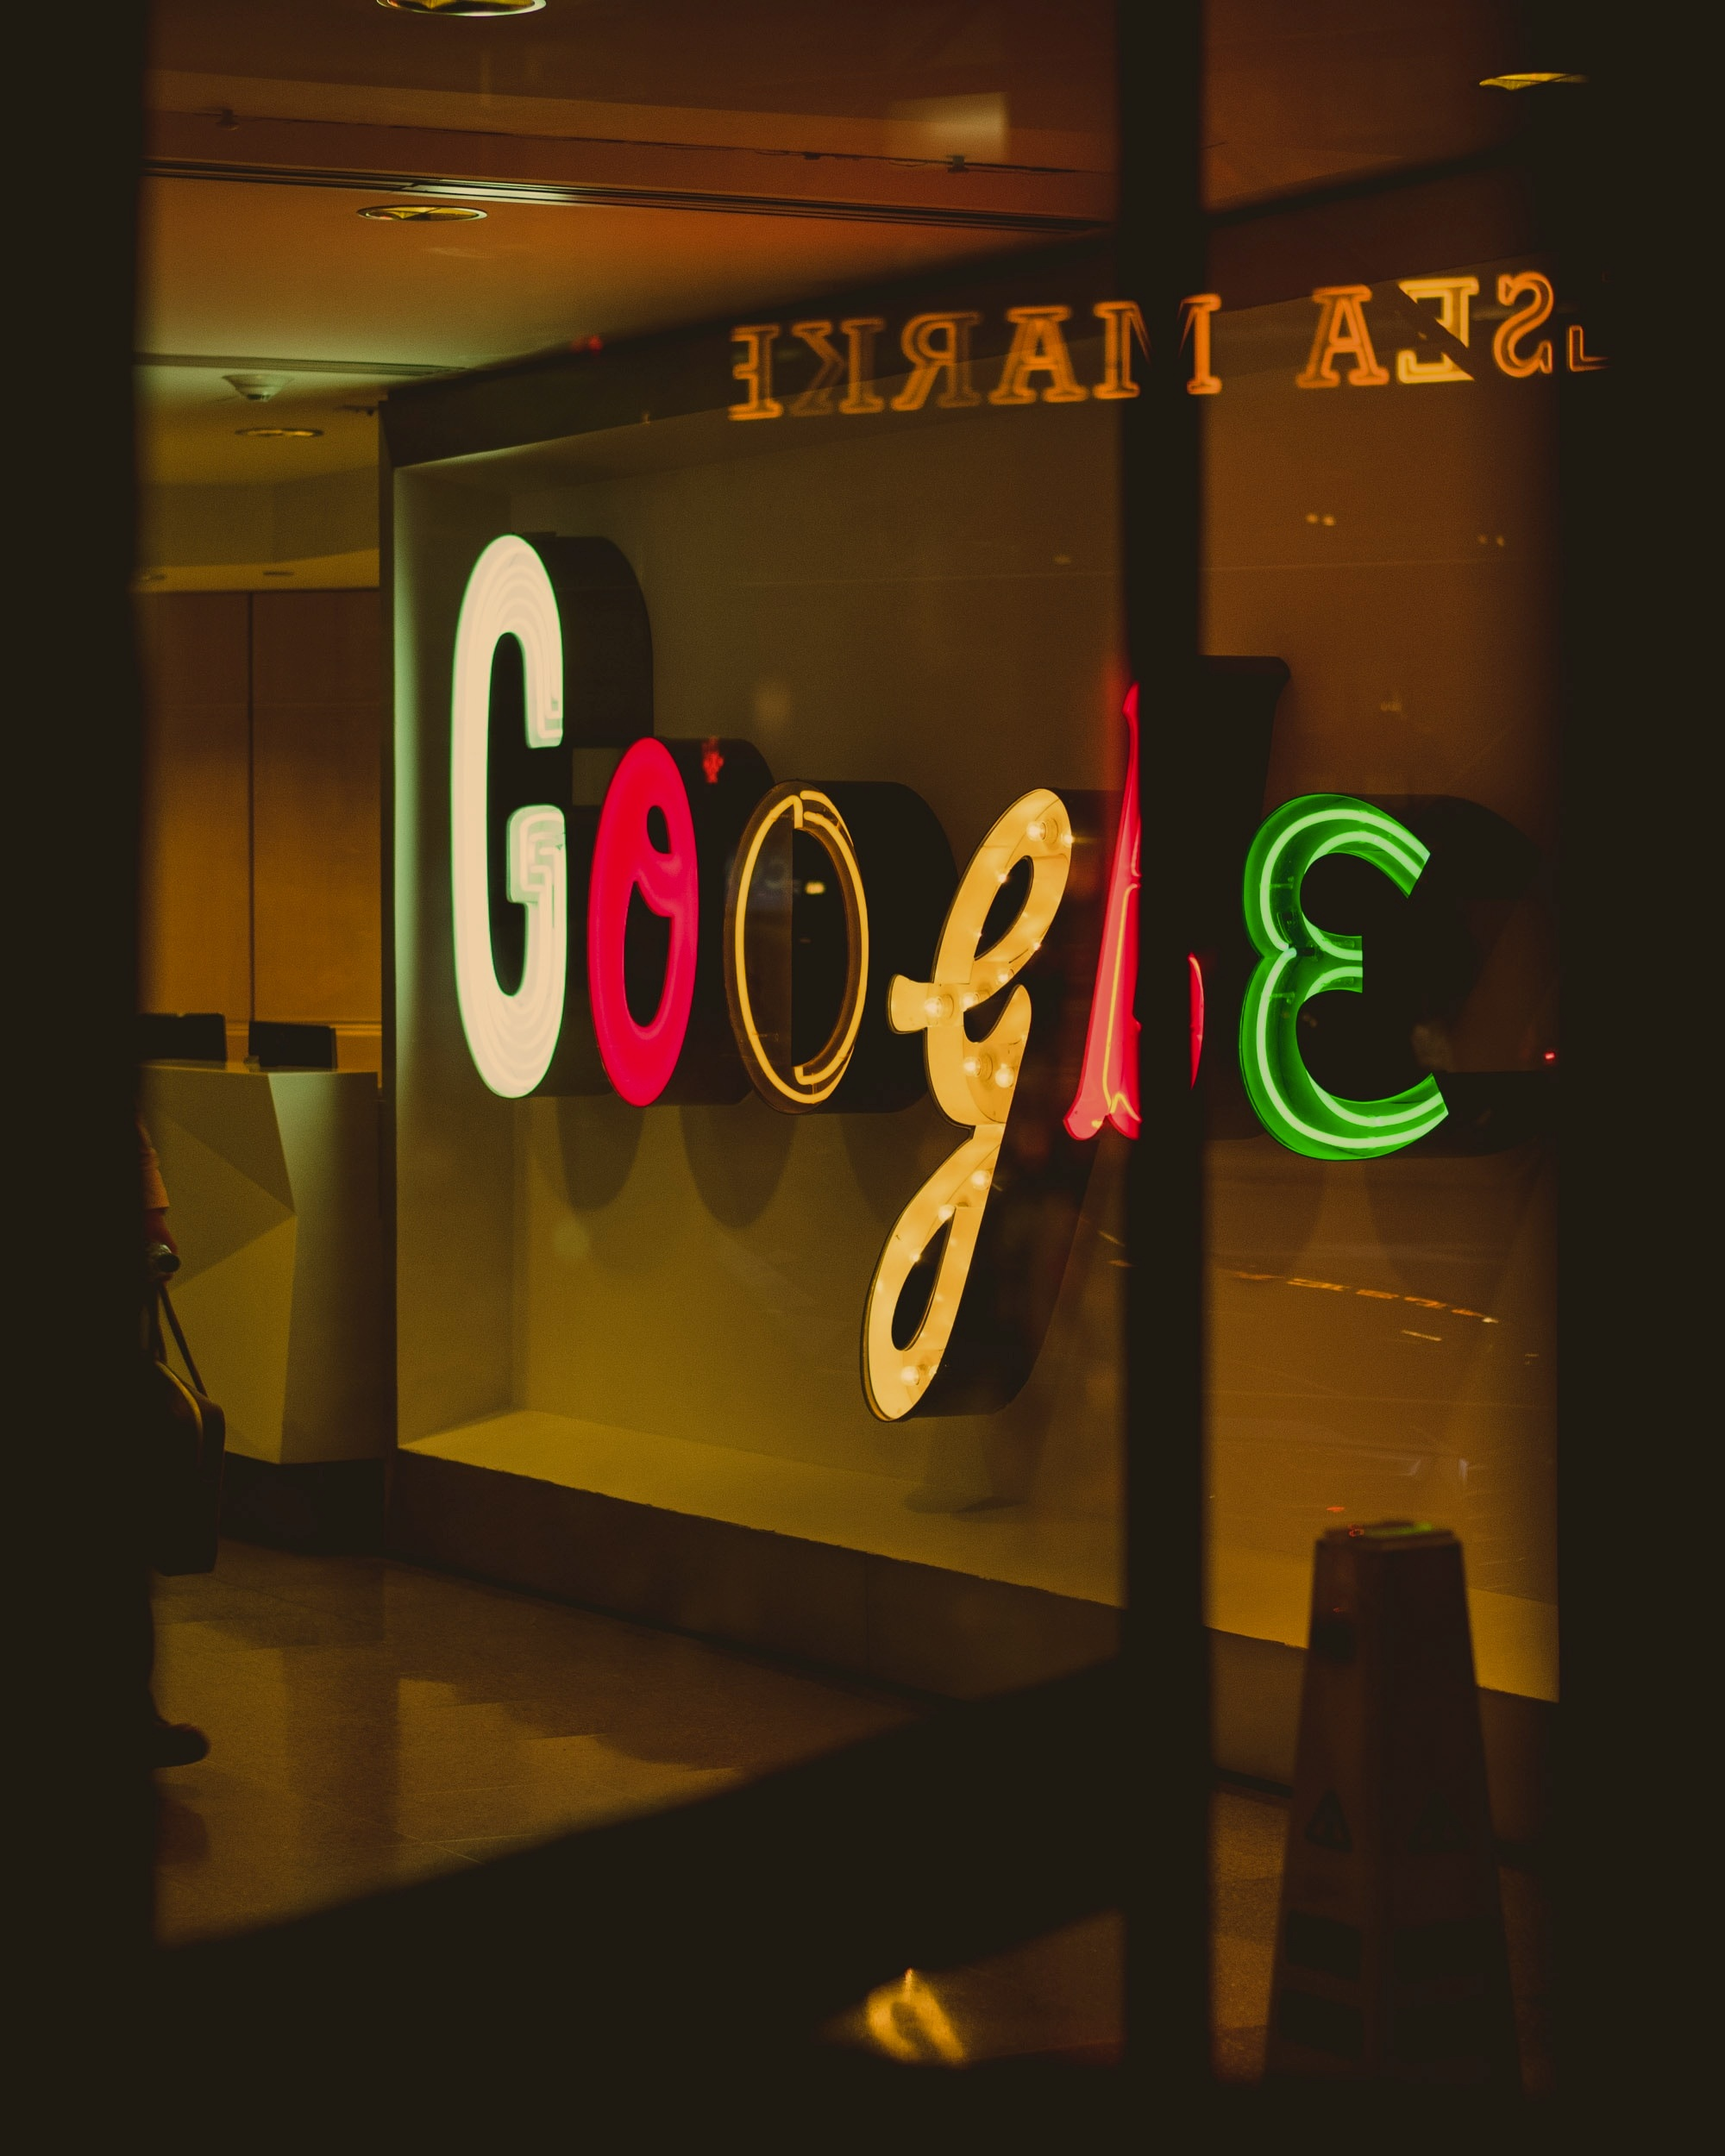 Search Engine Marketing - Position your brand at the exact place and time prospects are looking for your offering so you can capitalize on high intent searches.GOOGLE ADSADWORDSBING ADSGOOGLE ANALYTICS